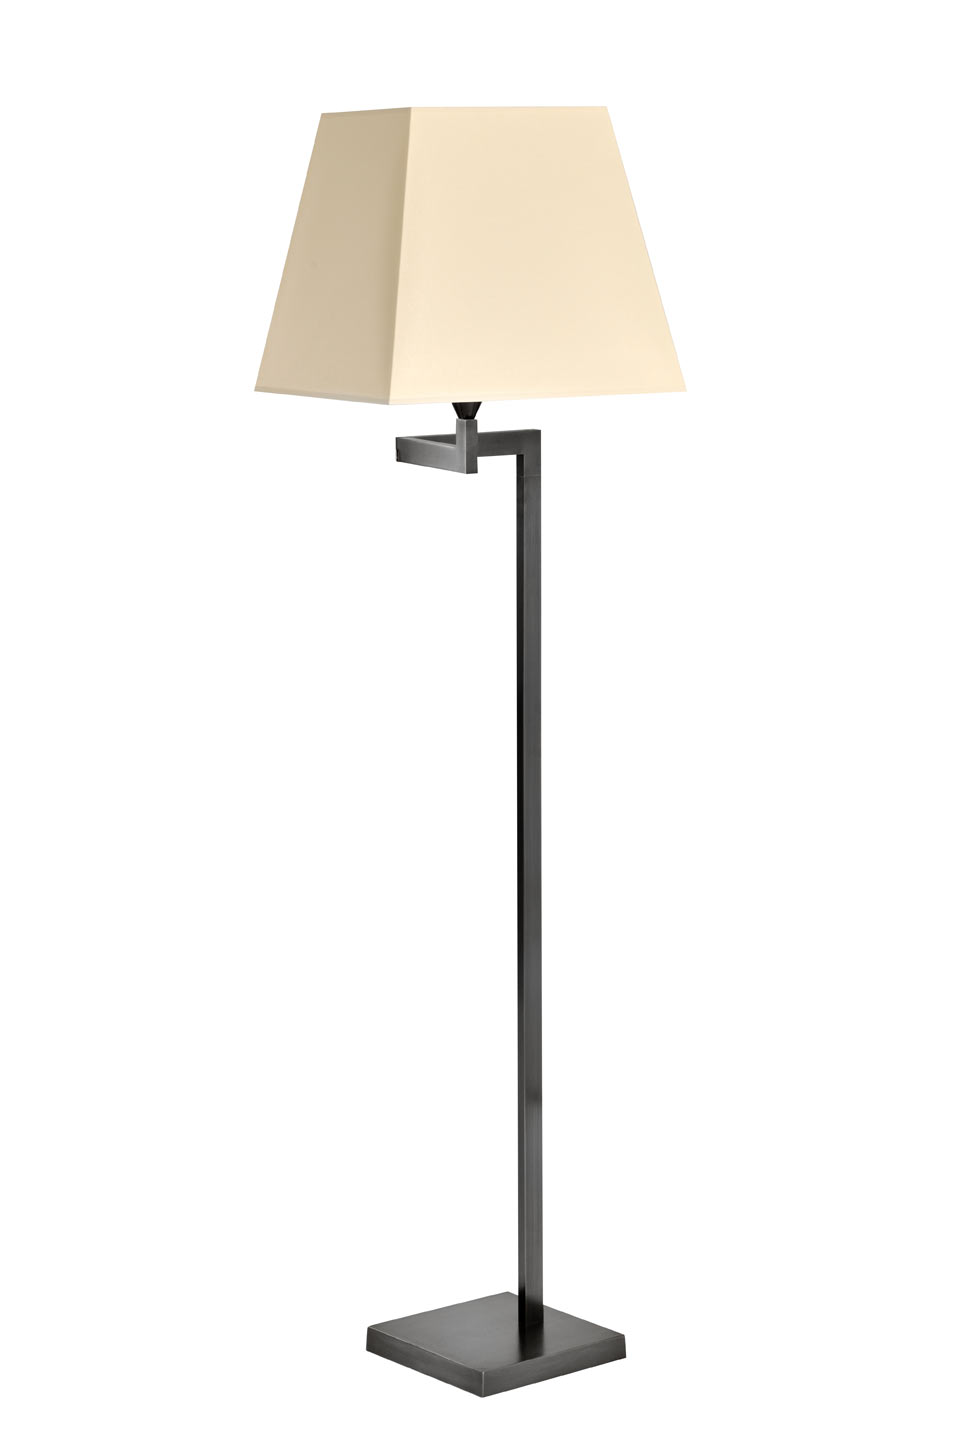 Articulated black patinated floor lamp, ivory shade LD59. Casadisagne.